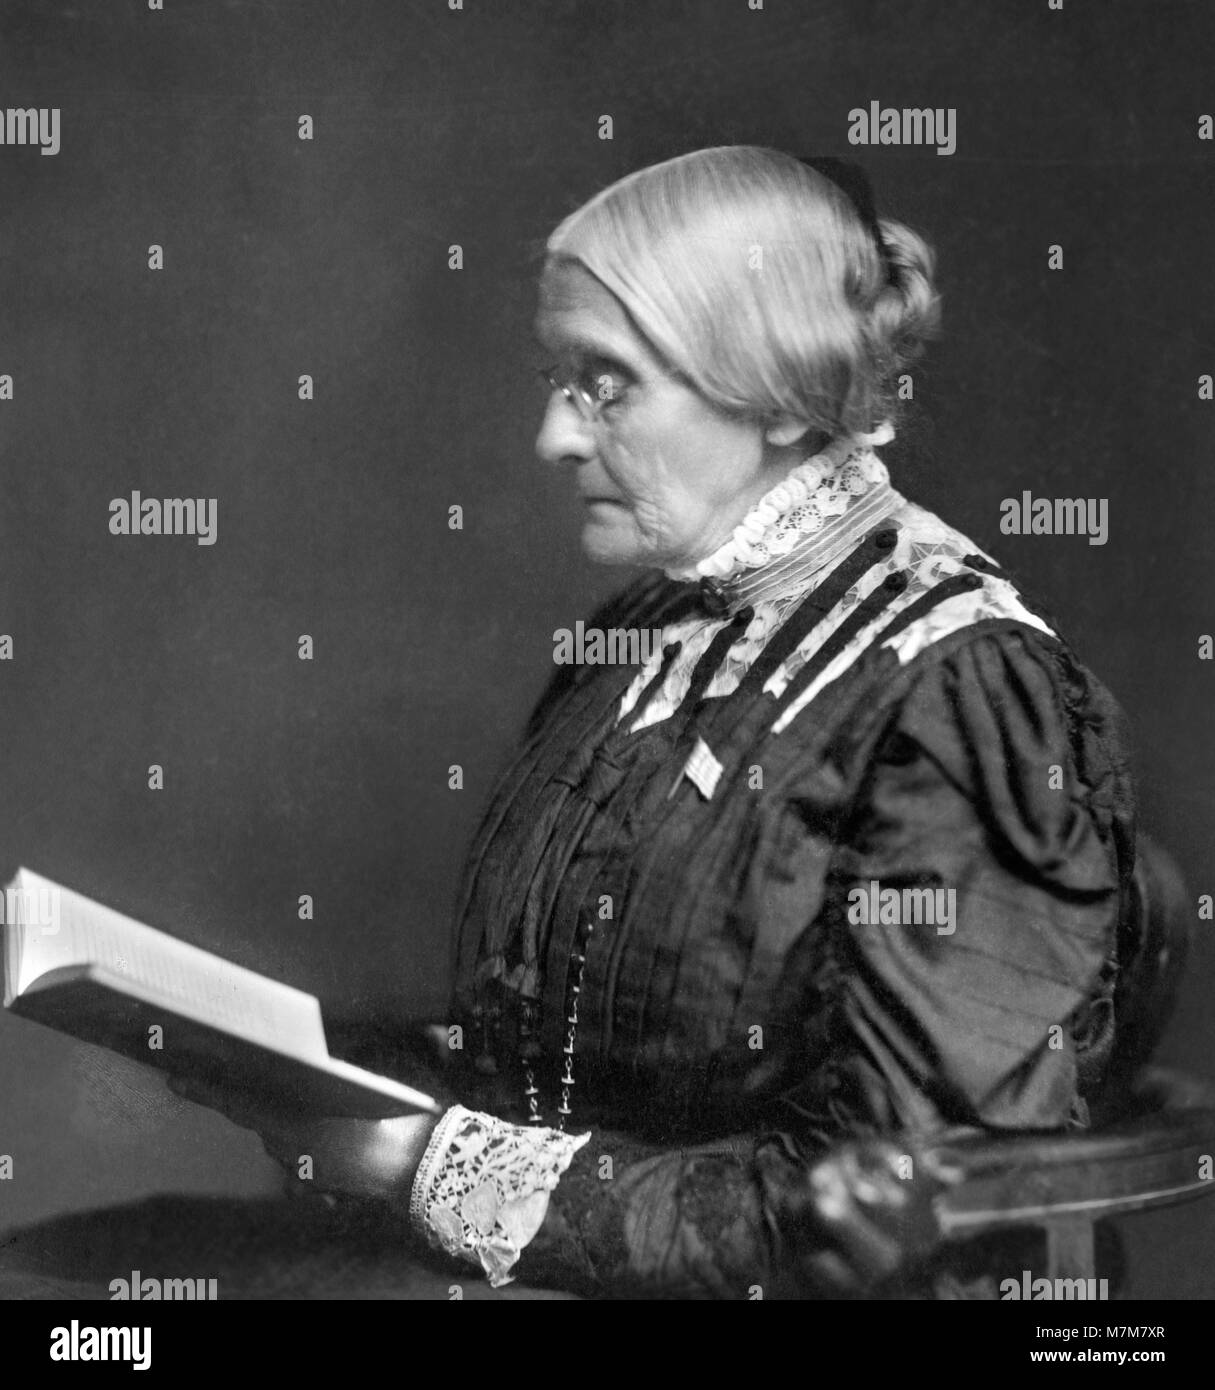 Susan B Anthony. Portrait of Susan Brownell Anthony (1820-1906), American suffragists and social reformer, c.1900. - Stock Image